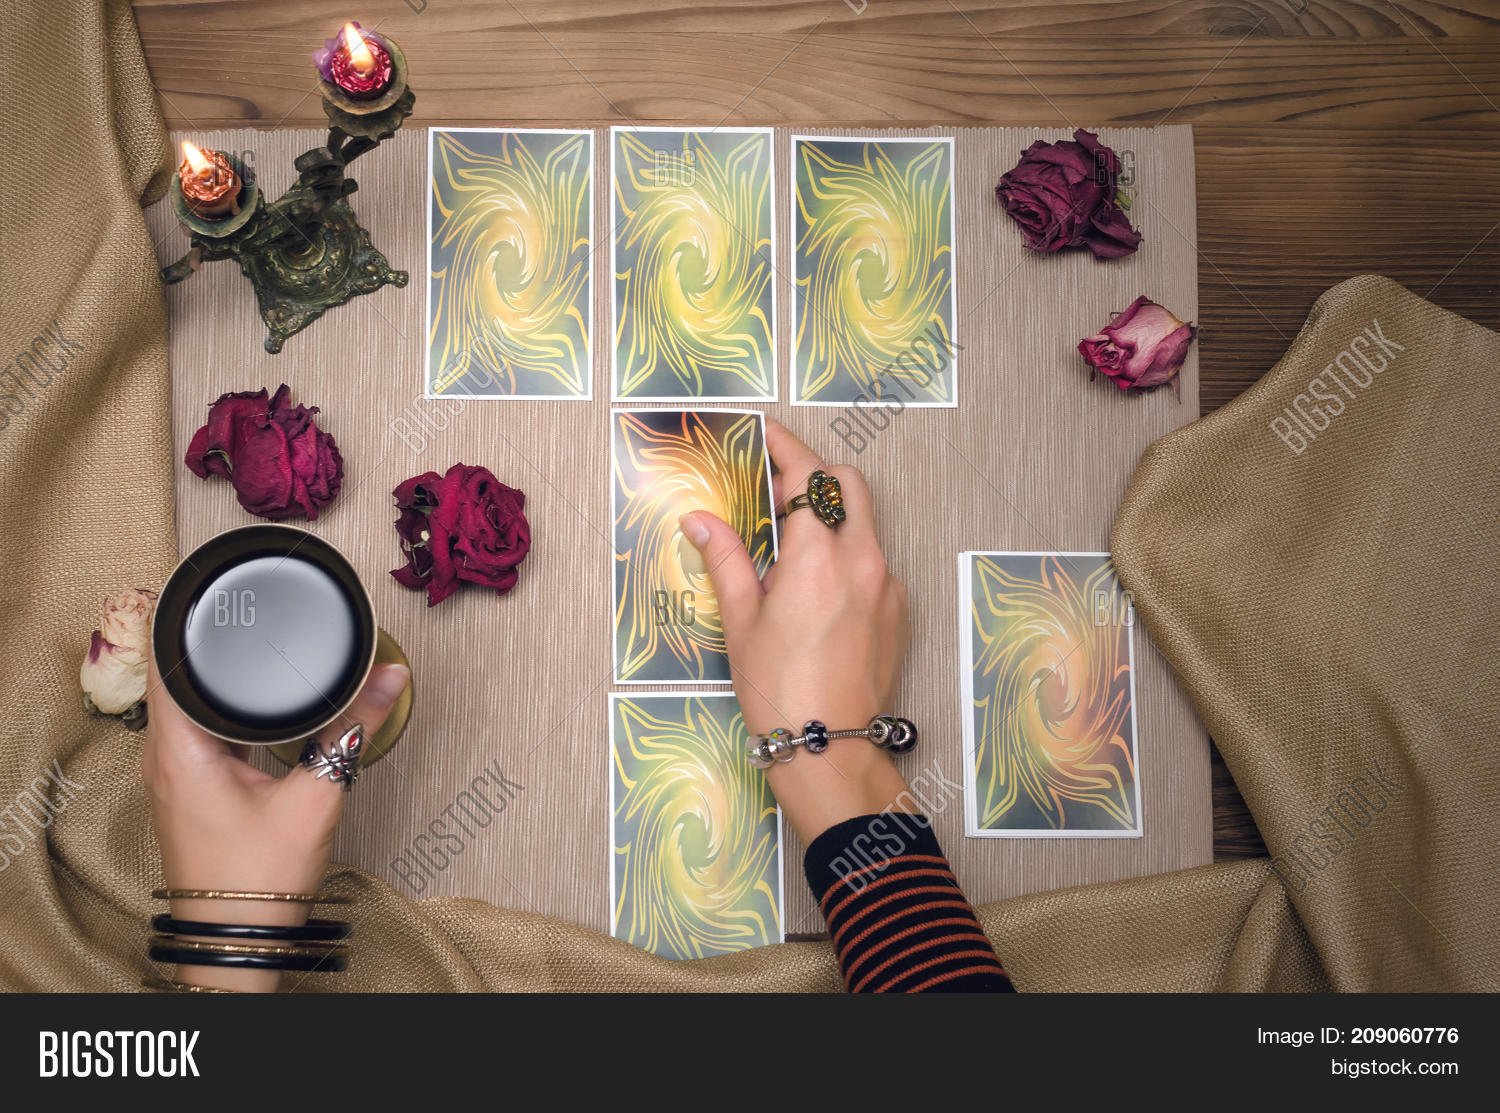 Tarot Cards On Wooden Image & Photo (Free Trial) | Bigstock